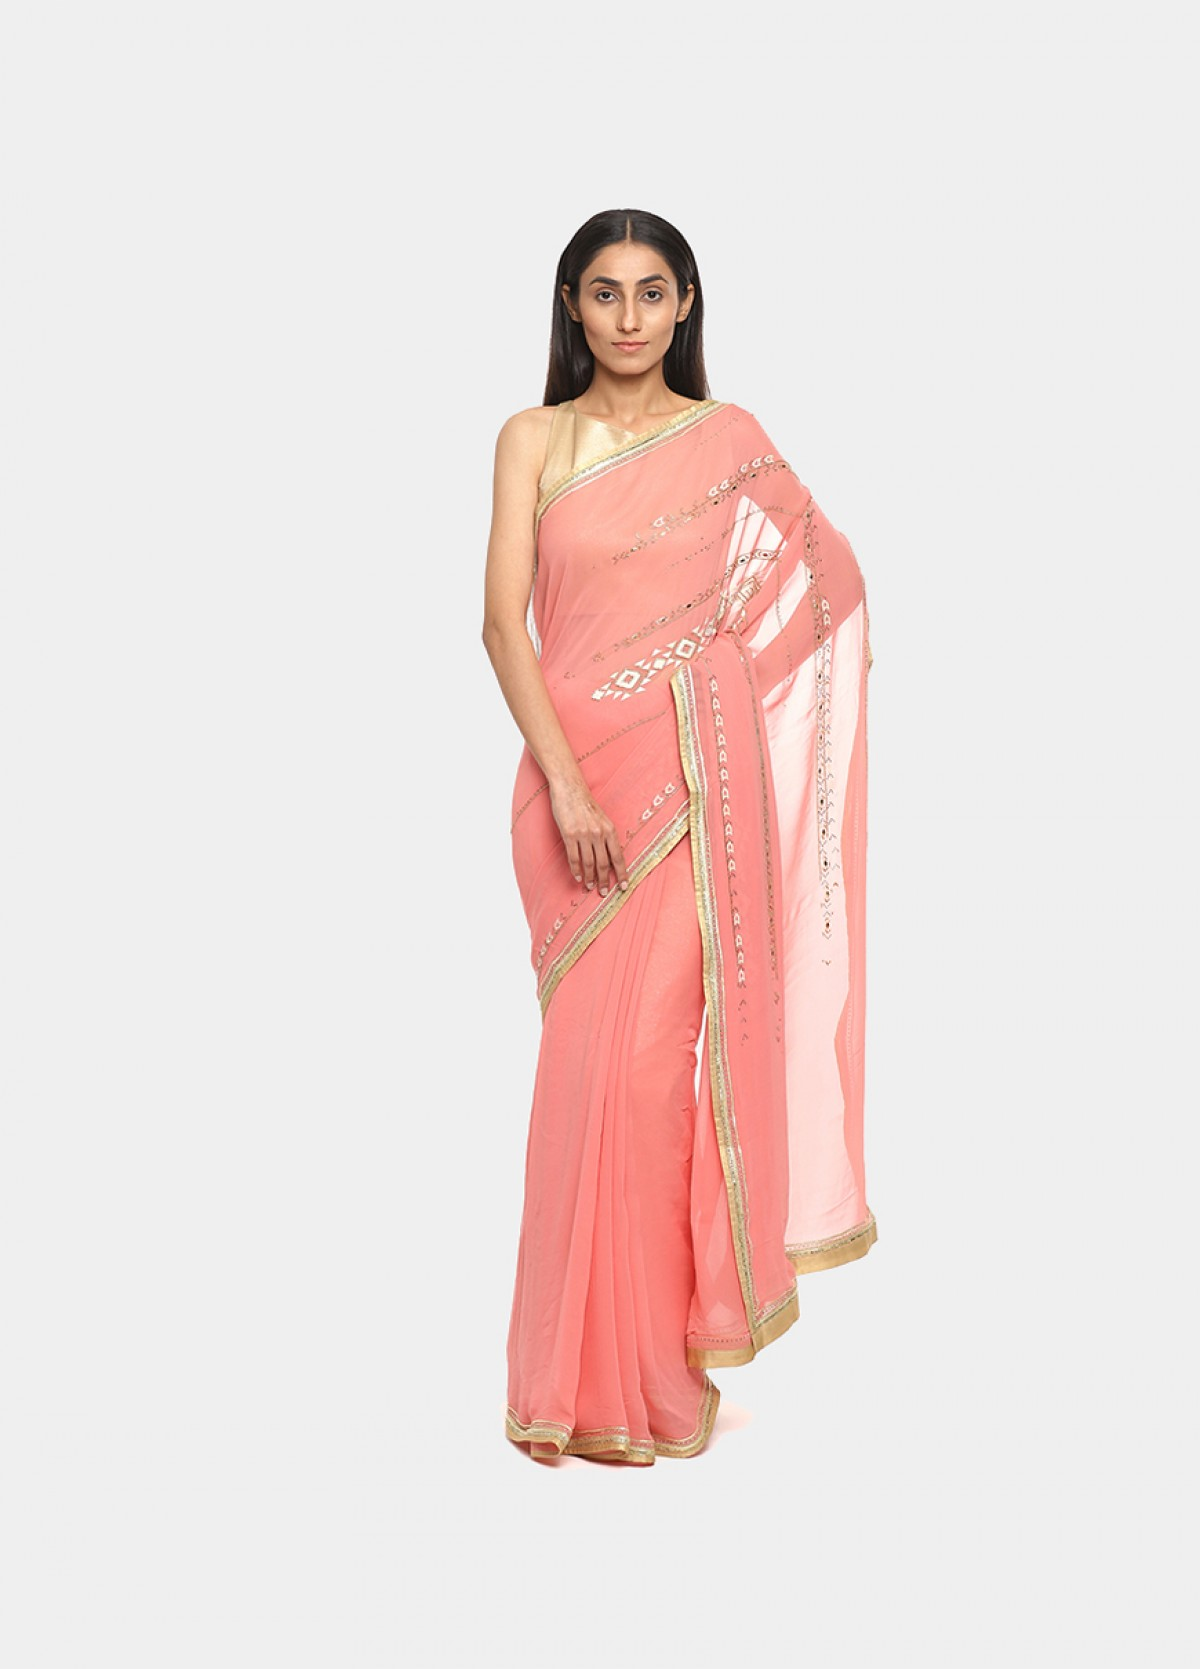 The Silk Georgette Pink Embroidered Sari